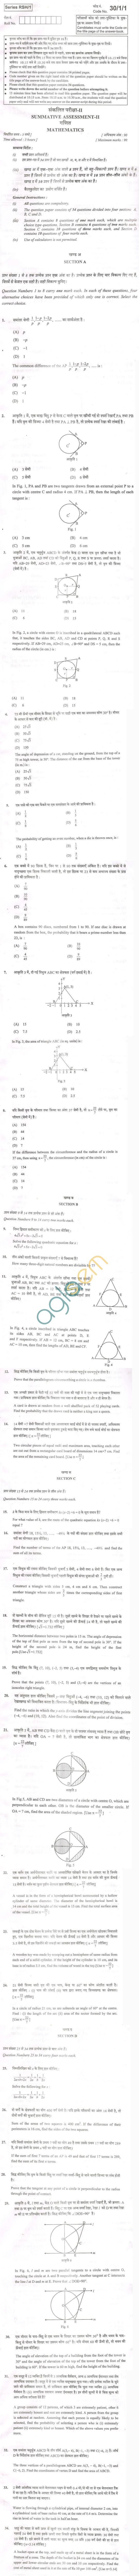 CBSE Board Exam 2013 Class X Question Paper - Mathematics